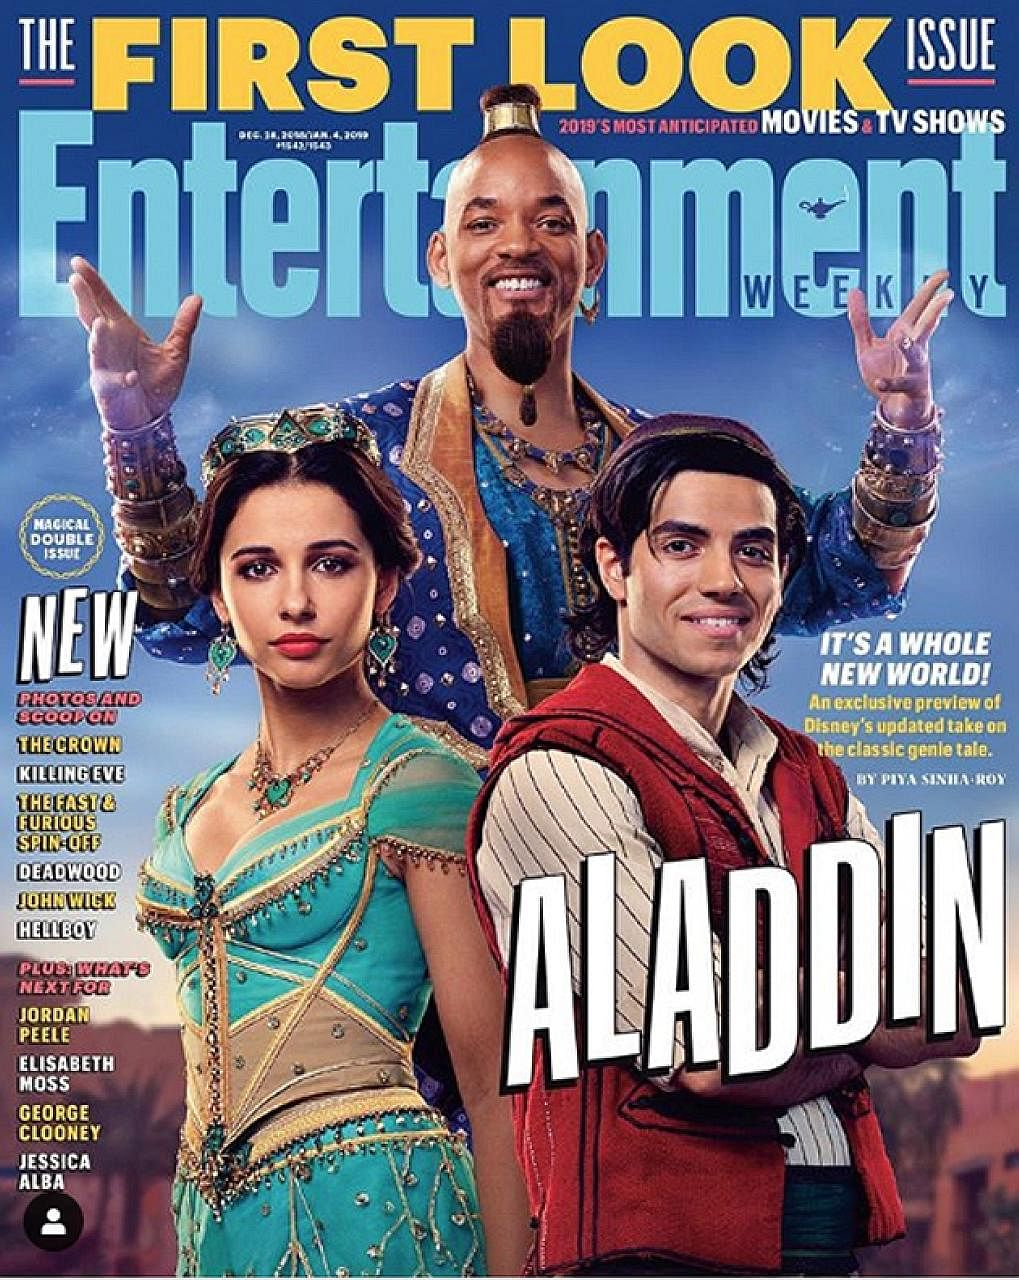 The Entertainment Weekly cover features American actor Will Smith as the Genie, British actress Naomi Scott as Princess Jasmine and Canadian actor Mena Massoud as Aladdin.